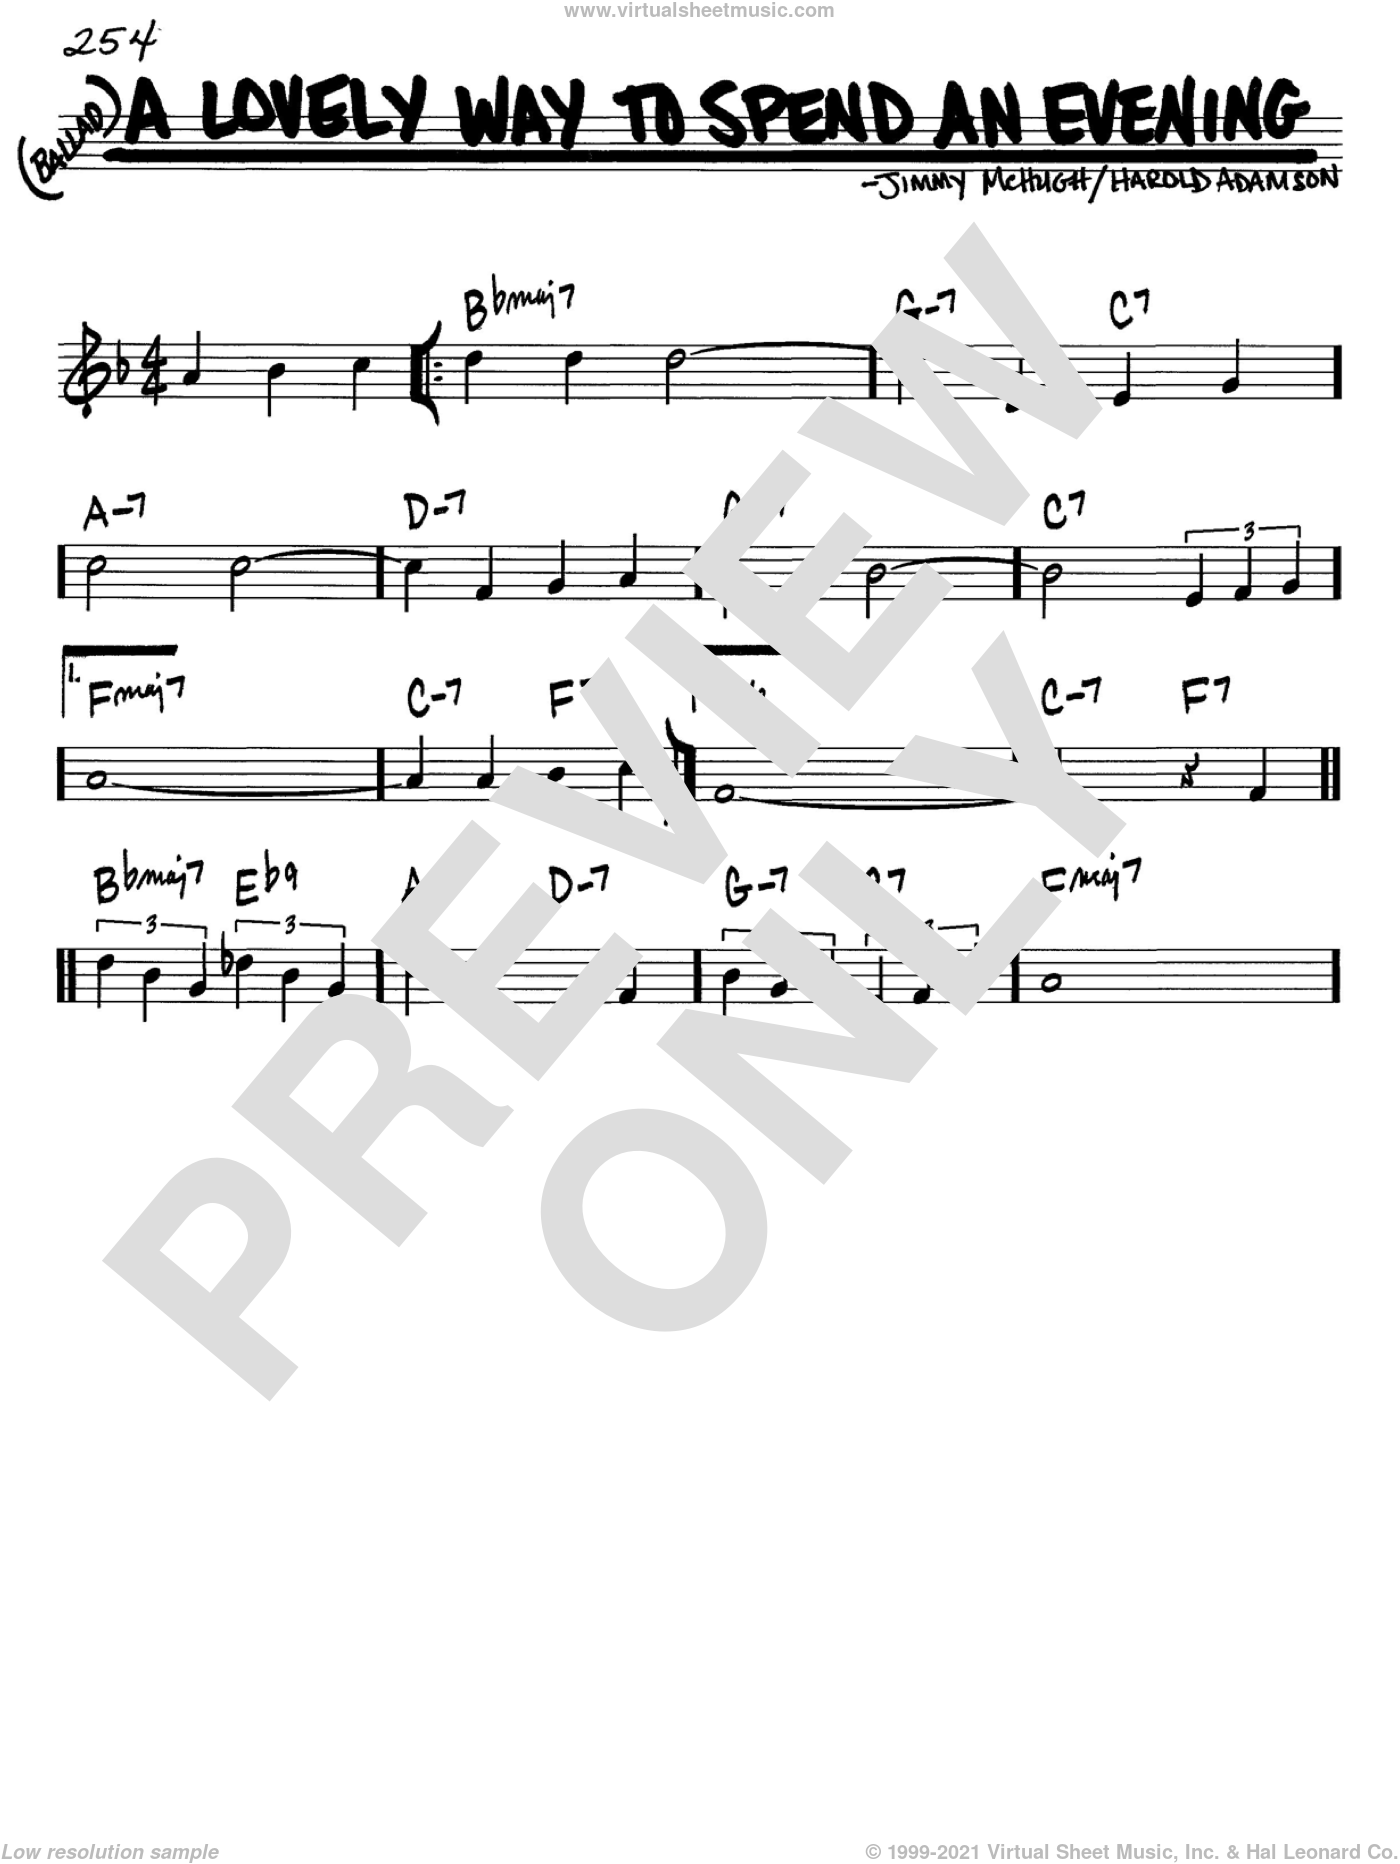 A Lovely Way To Spend An Evening sheet music for voice and other instruments (in C) by Frank Sinatra, Harold Adamson and Jimmy McHugh, intermediate skill level